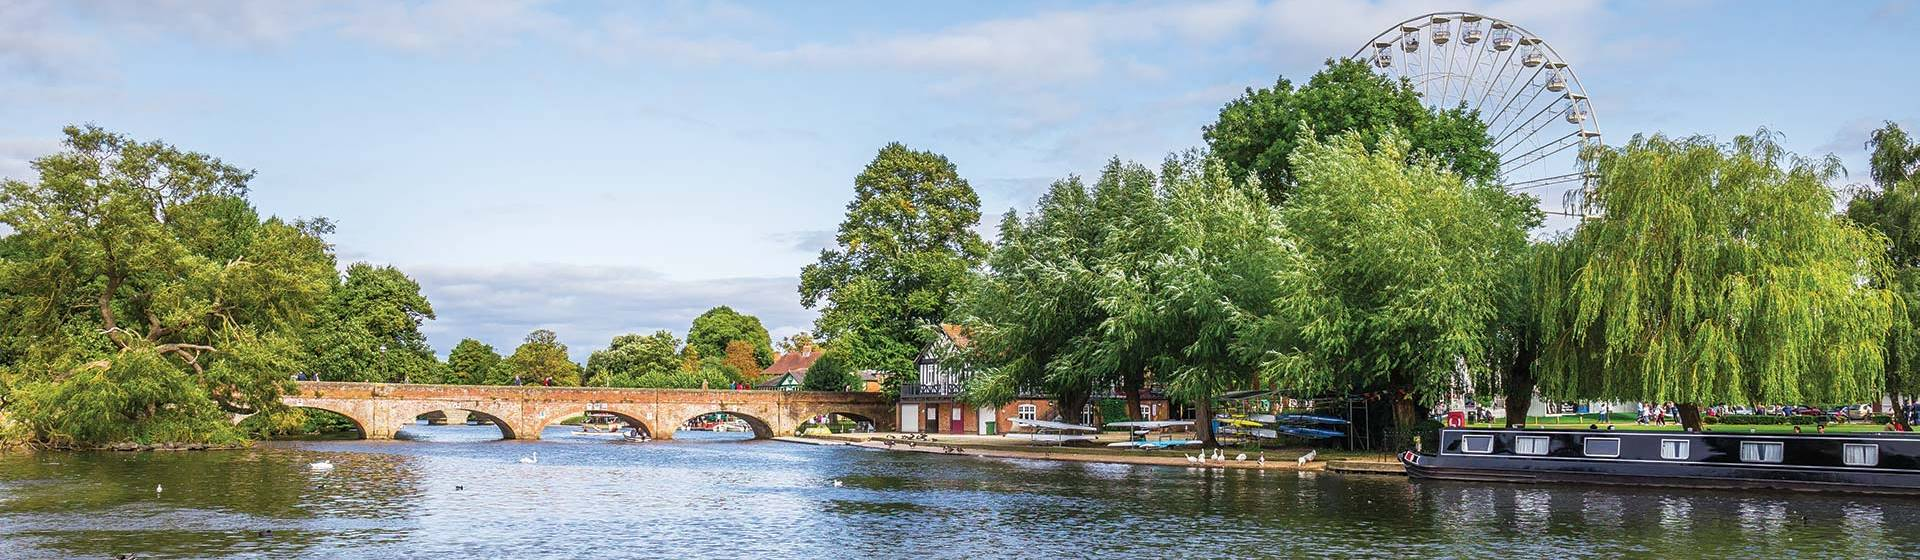 Stratford Upon Avon & Optional River Cruise